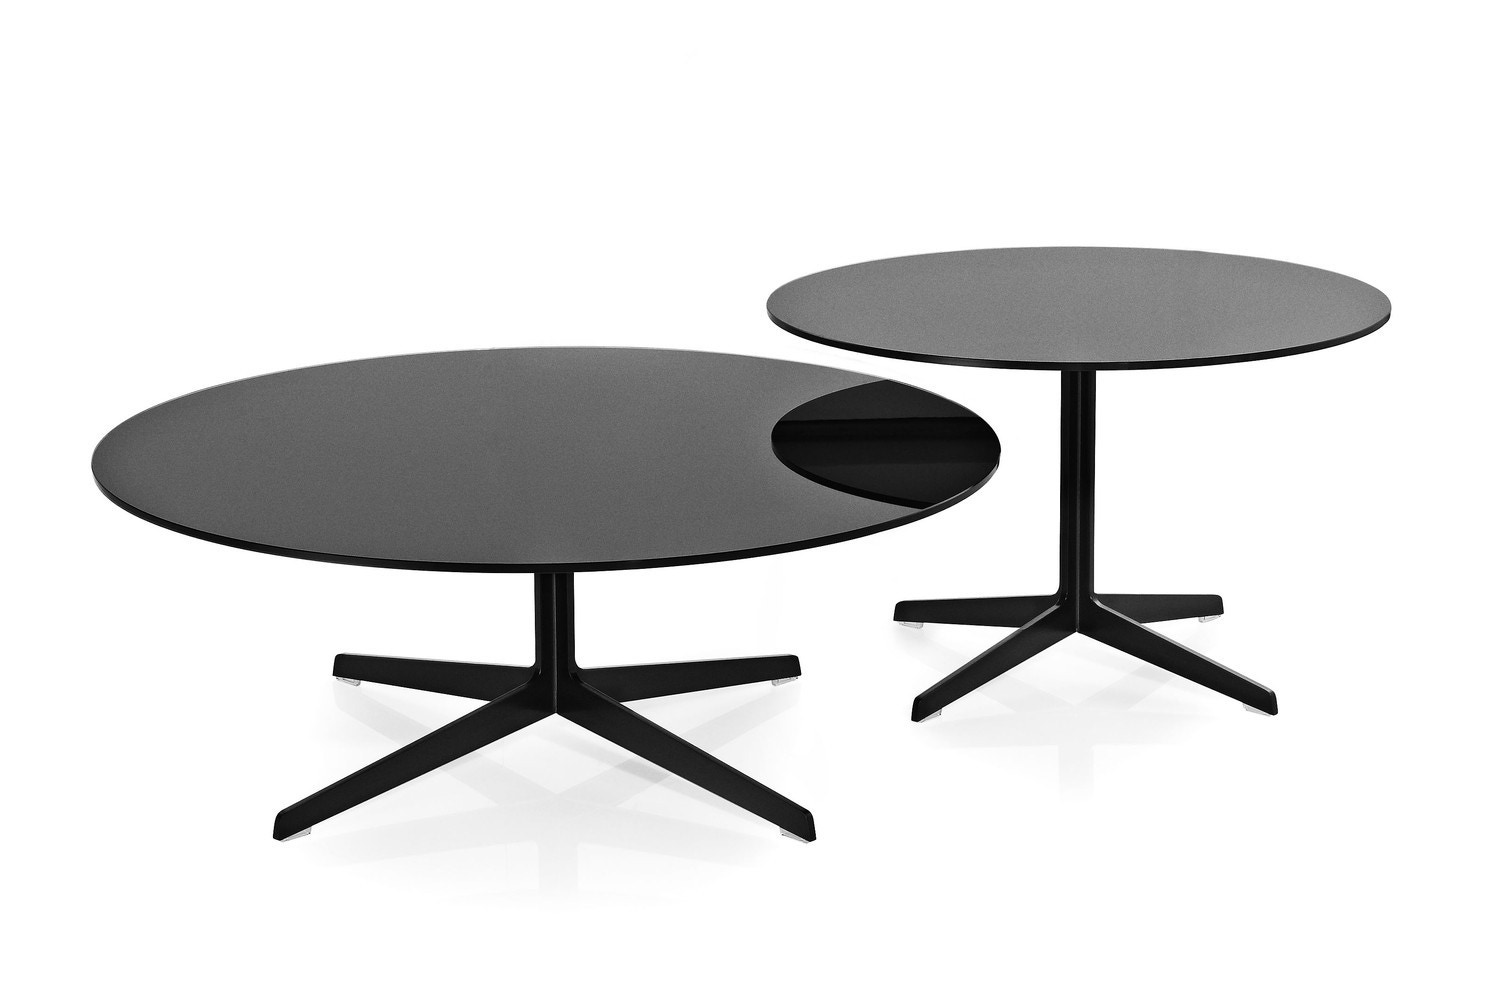 Fritz hansen space coffee table modern planet for Html table spacing